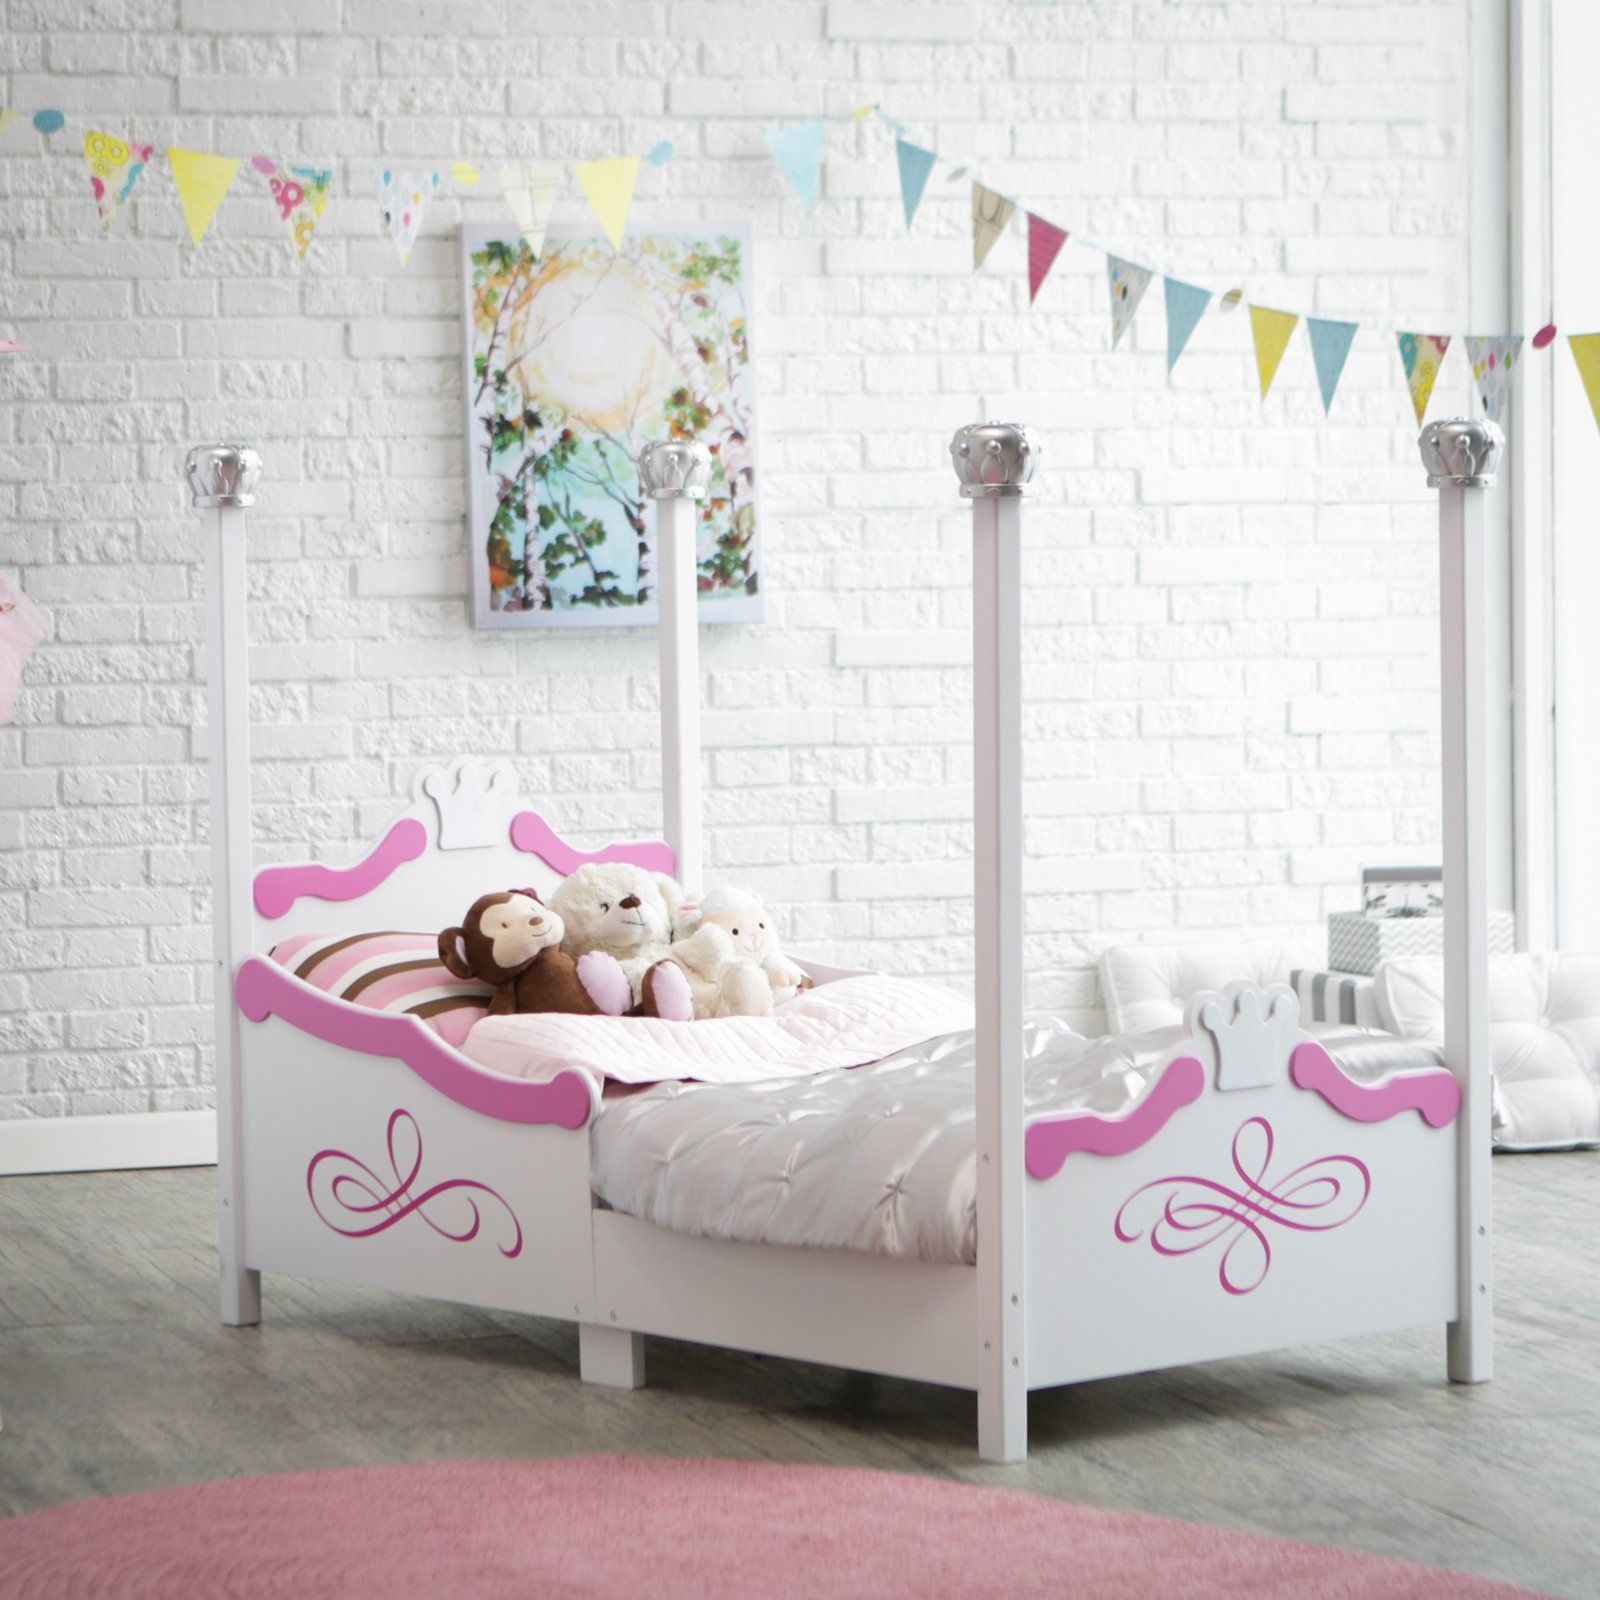 Kidkraft Princess Toddler Bed   Silver   Painted In Silver Tone Finish With  Crowns Adorning The